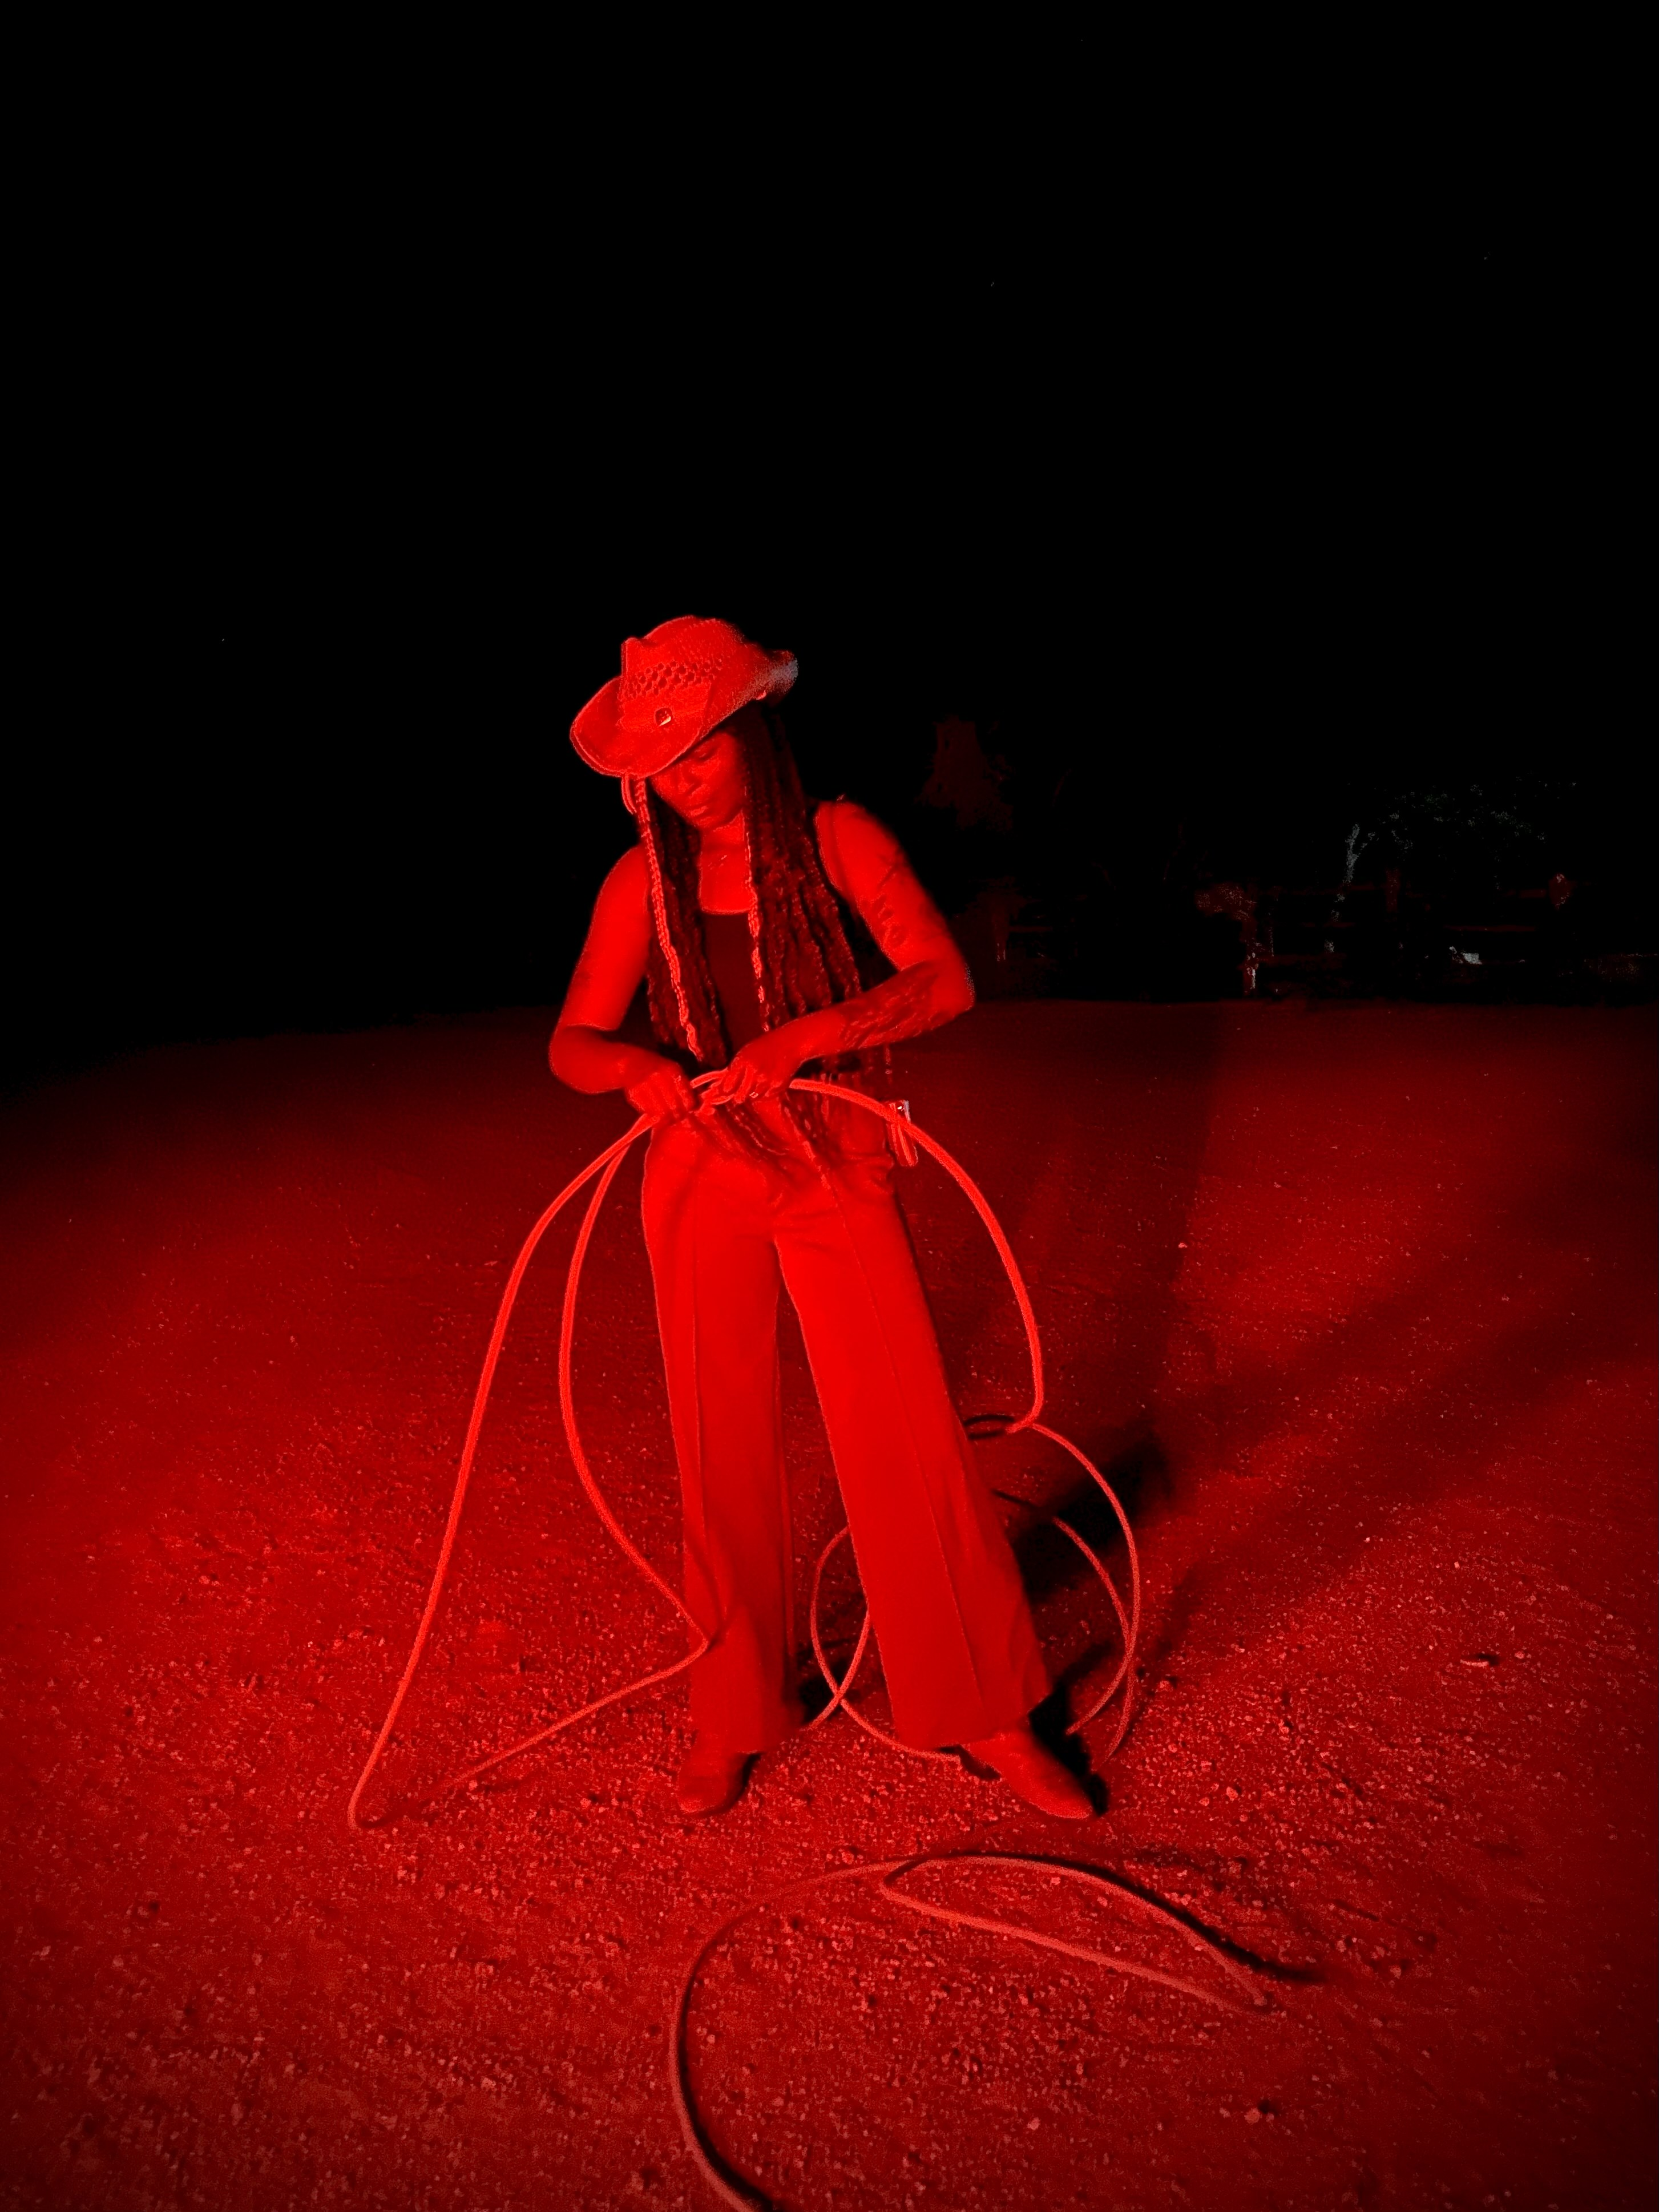 Woman putting together a lasso outside under a red light.